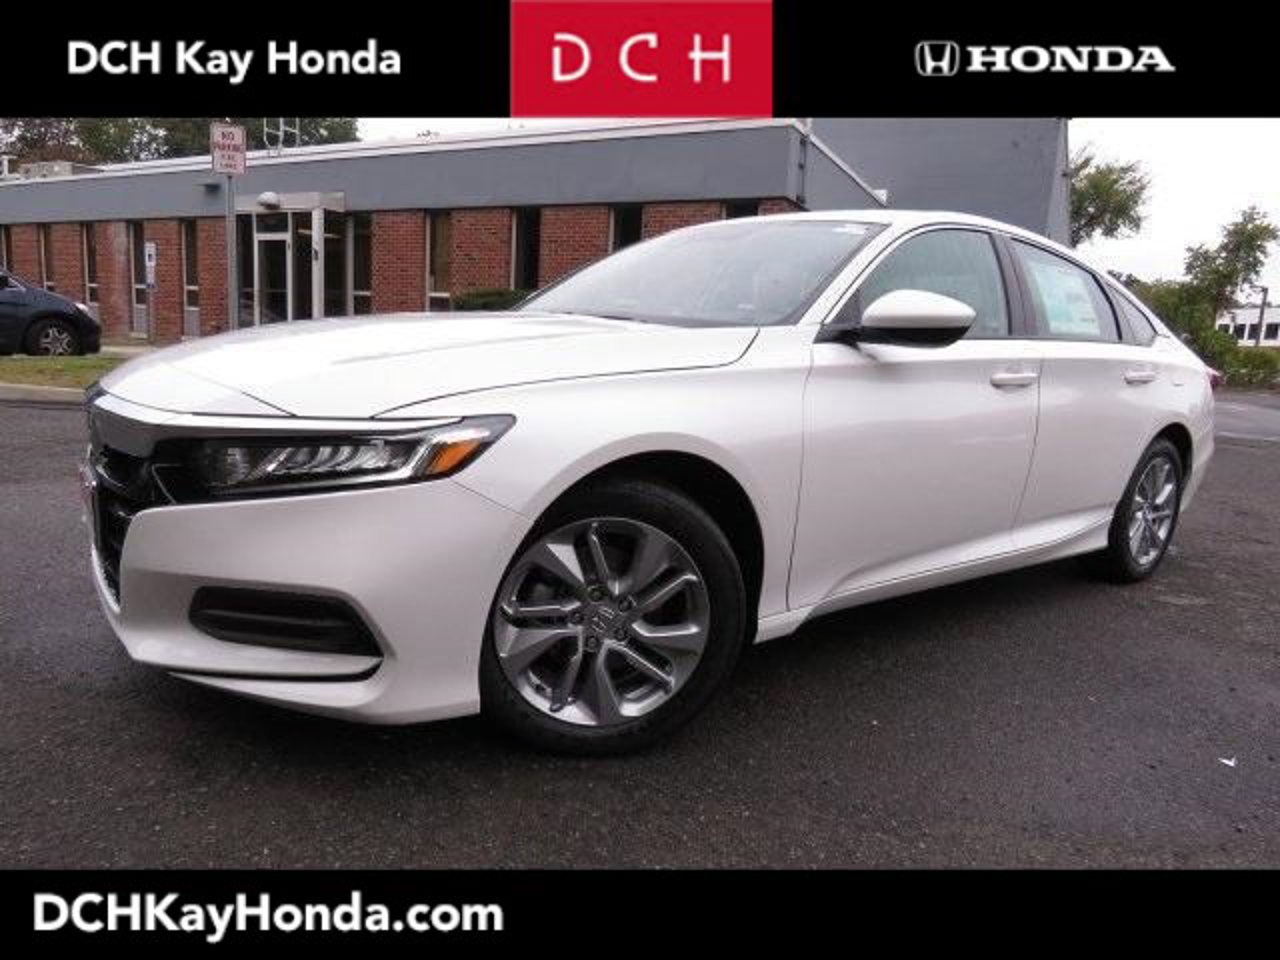 New 2020 Honda Accord Sedan in Eatontown, NJ